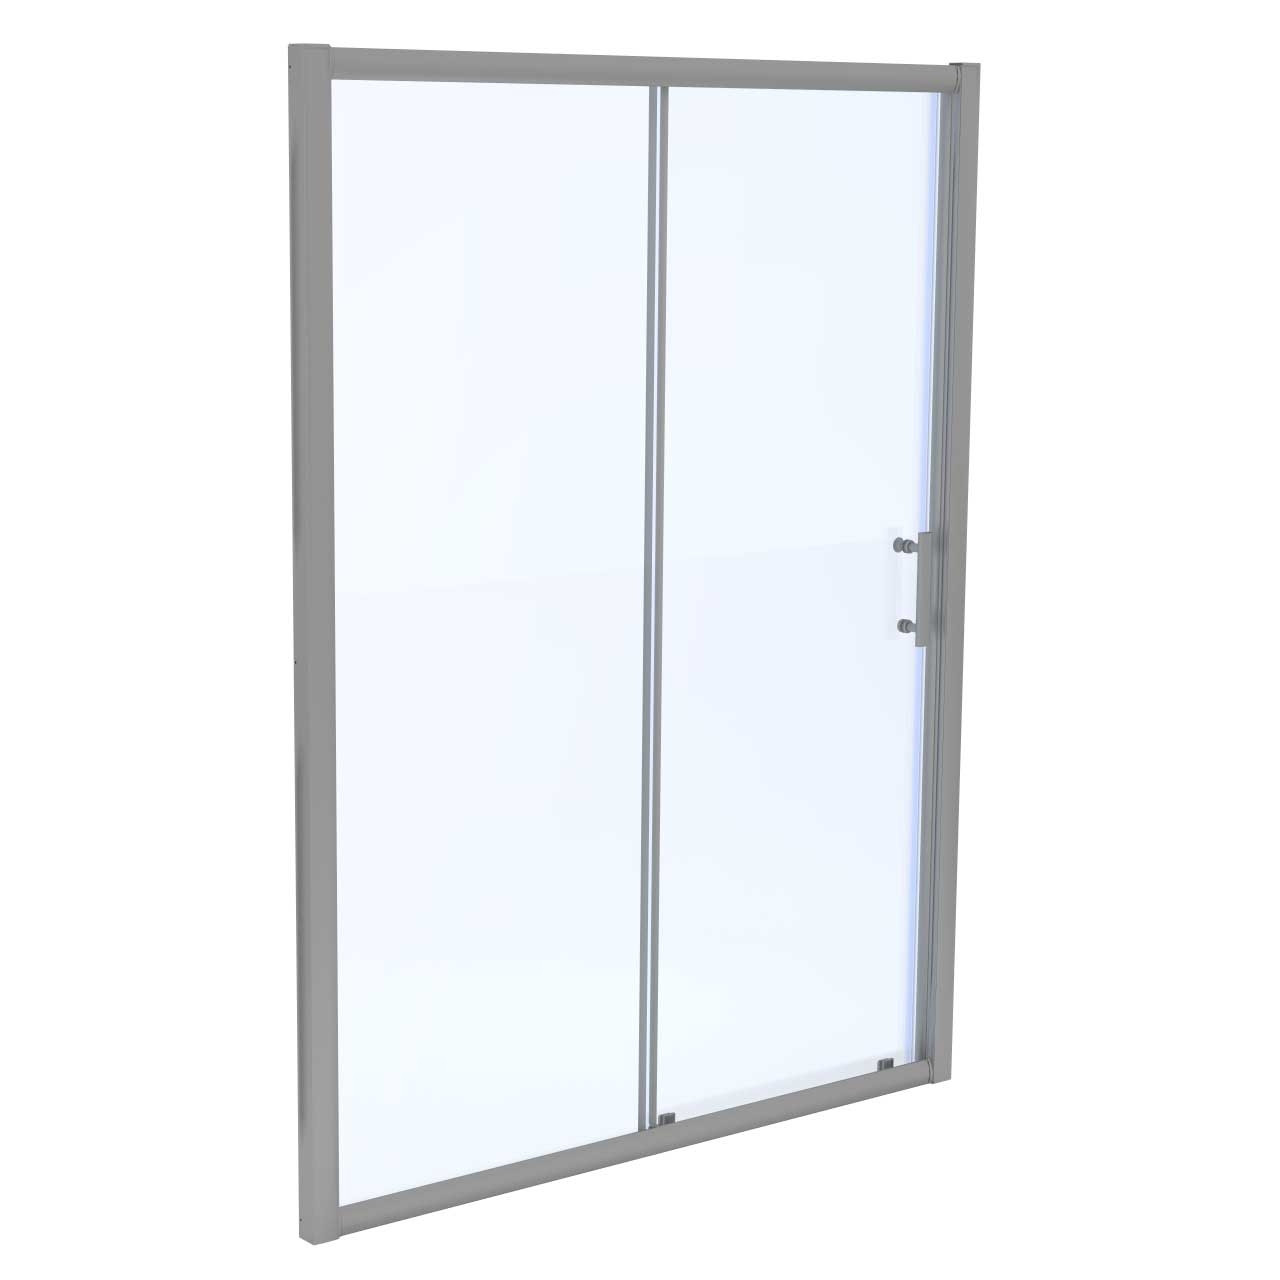 Series 6 1400mm x 760mm Sliding Door Shower Enclosure